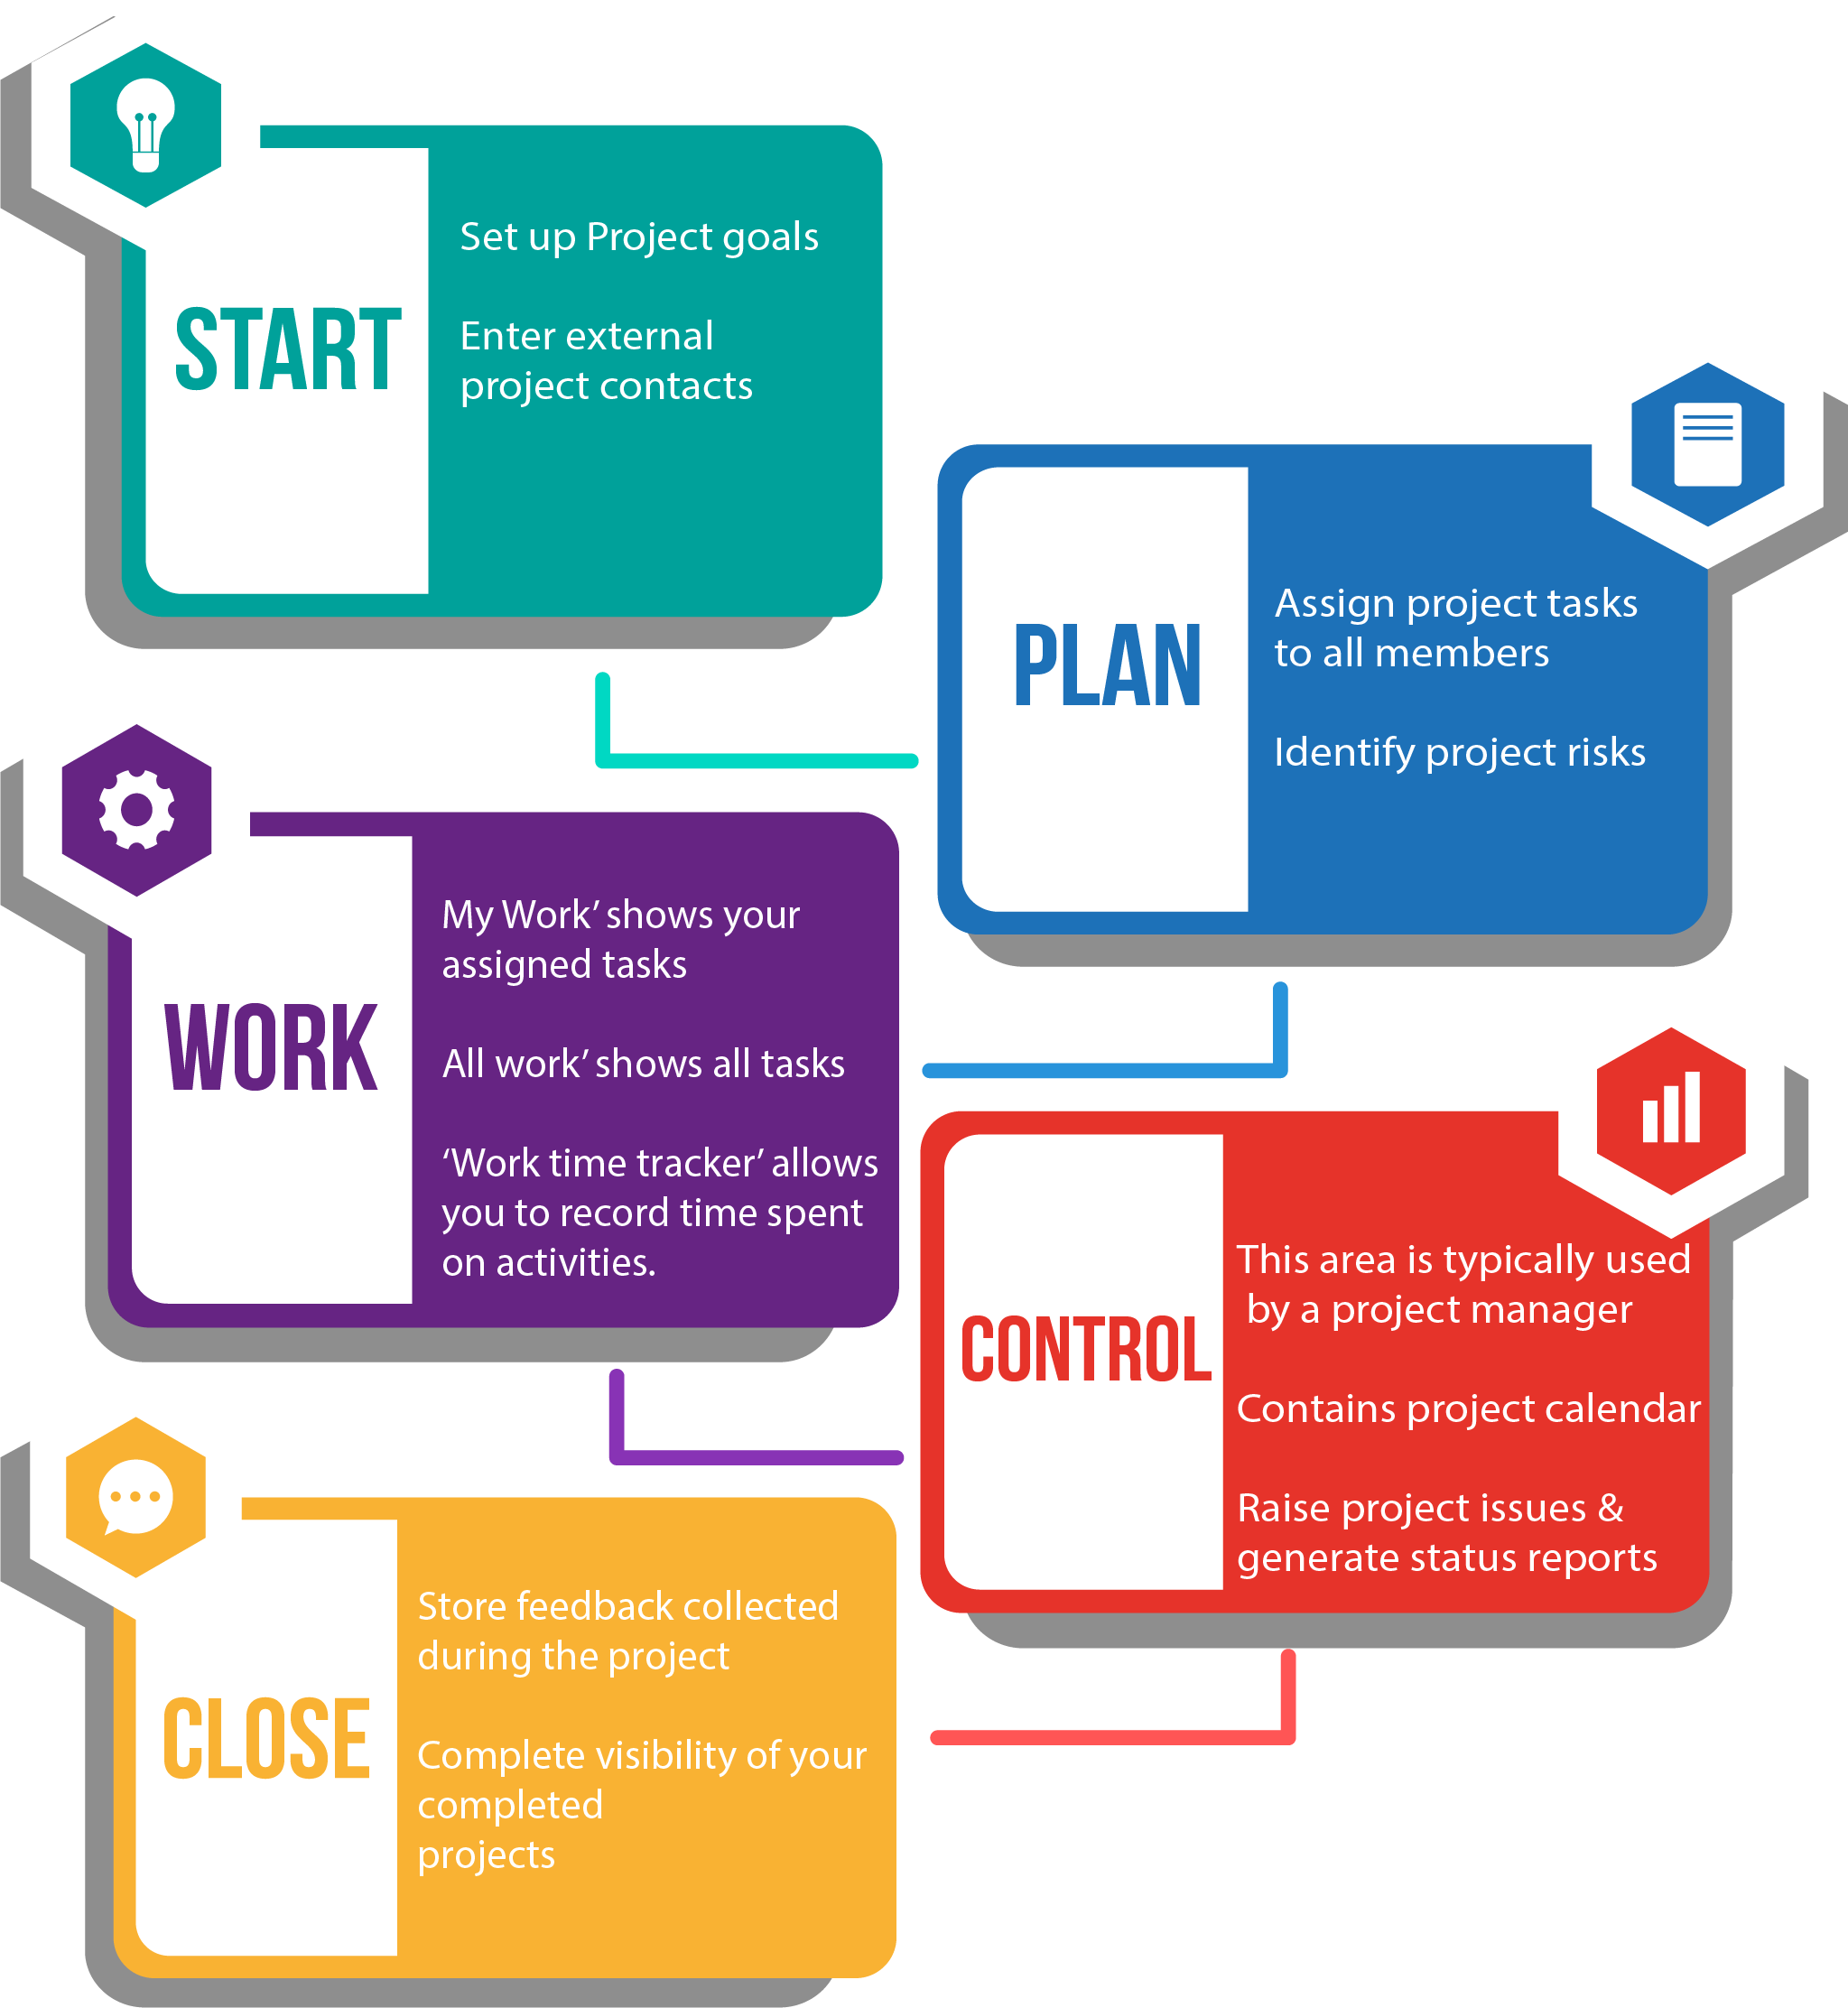 Project Management System Process by Betasoft Solutions